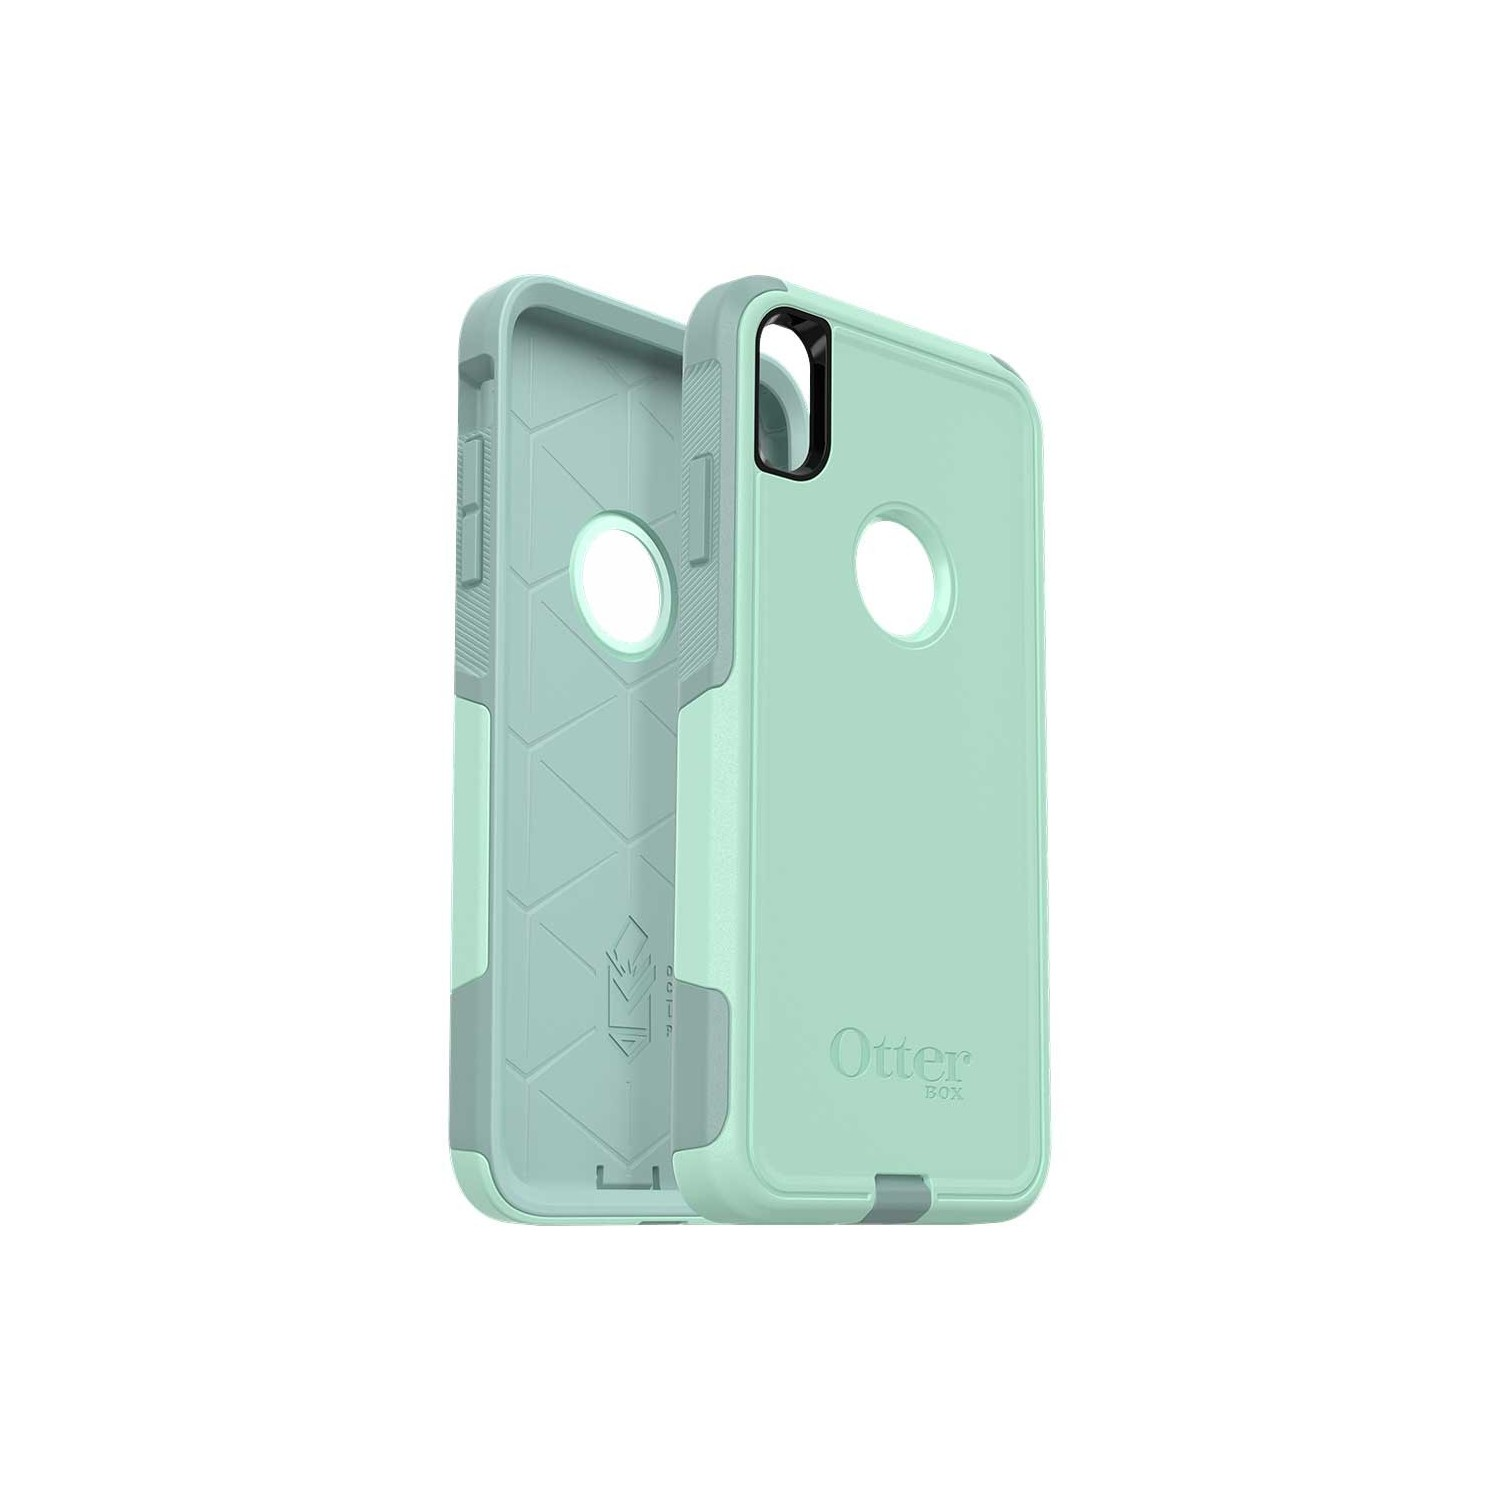 Case - Otterbox Commuter for iPhone Xs MAX Ocean Way